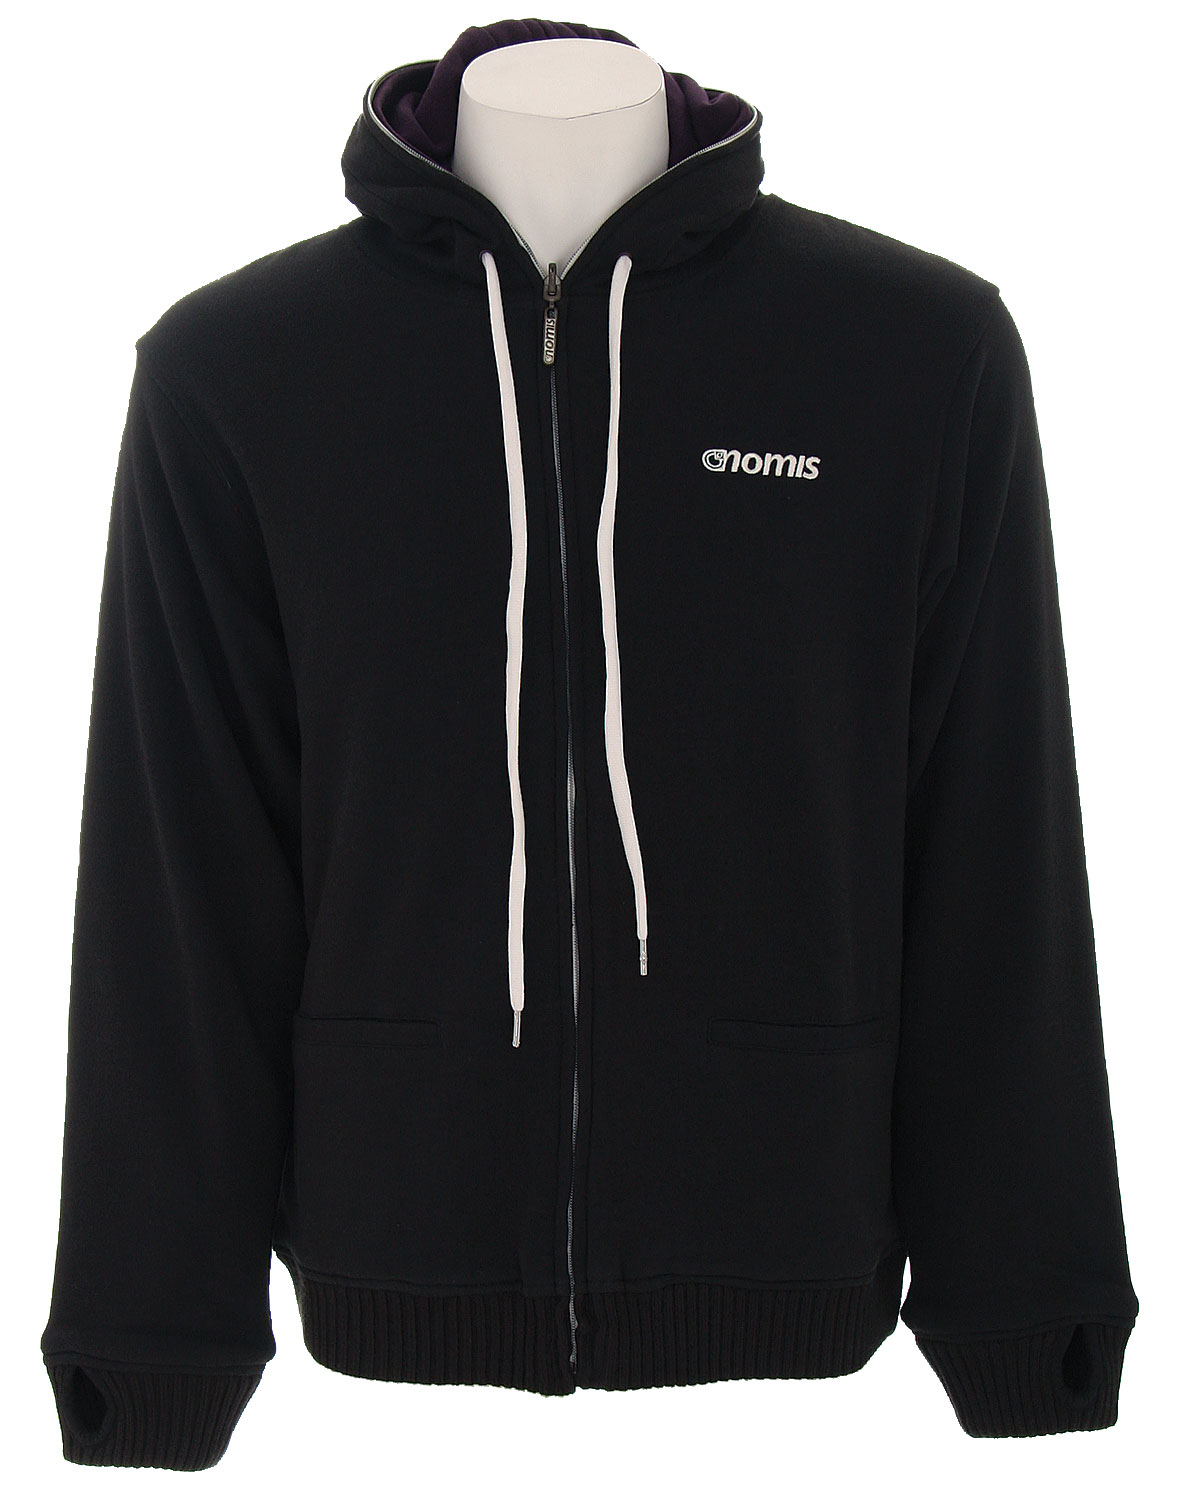 The Nomis Simom Referee Zip Hoodie - 80/20 Cotton / Poly French Terry / Reversible / Zips Half Way / 2 Color Knitted Stripe Pattern / Custom Zip Pull - Drawstring / Left Chest Embroidery - $39.95